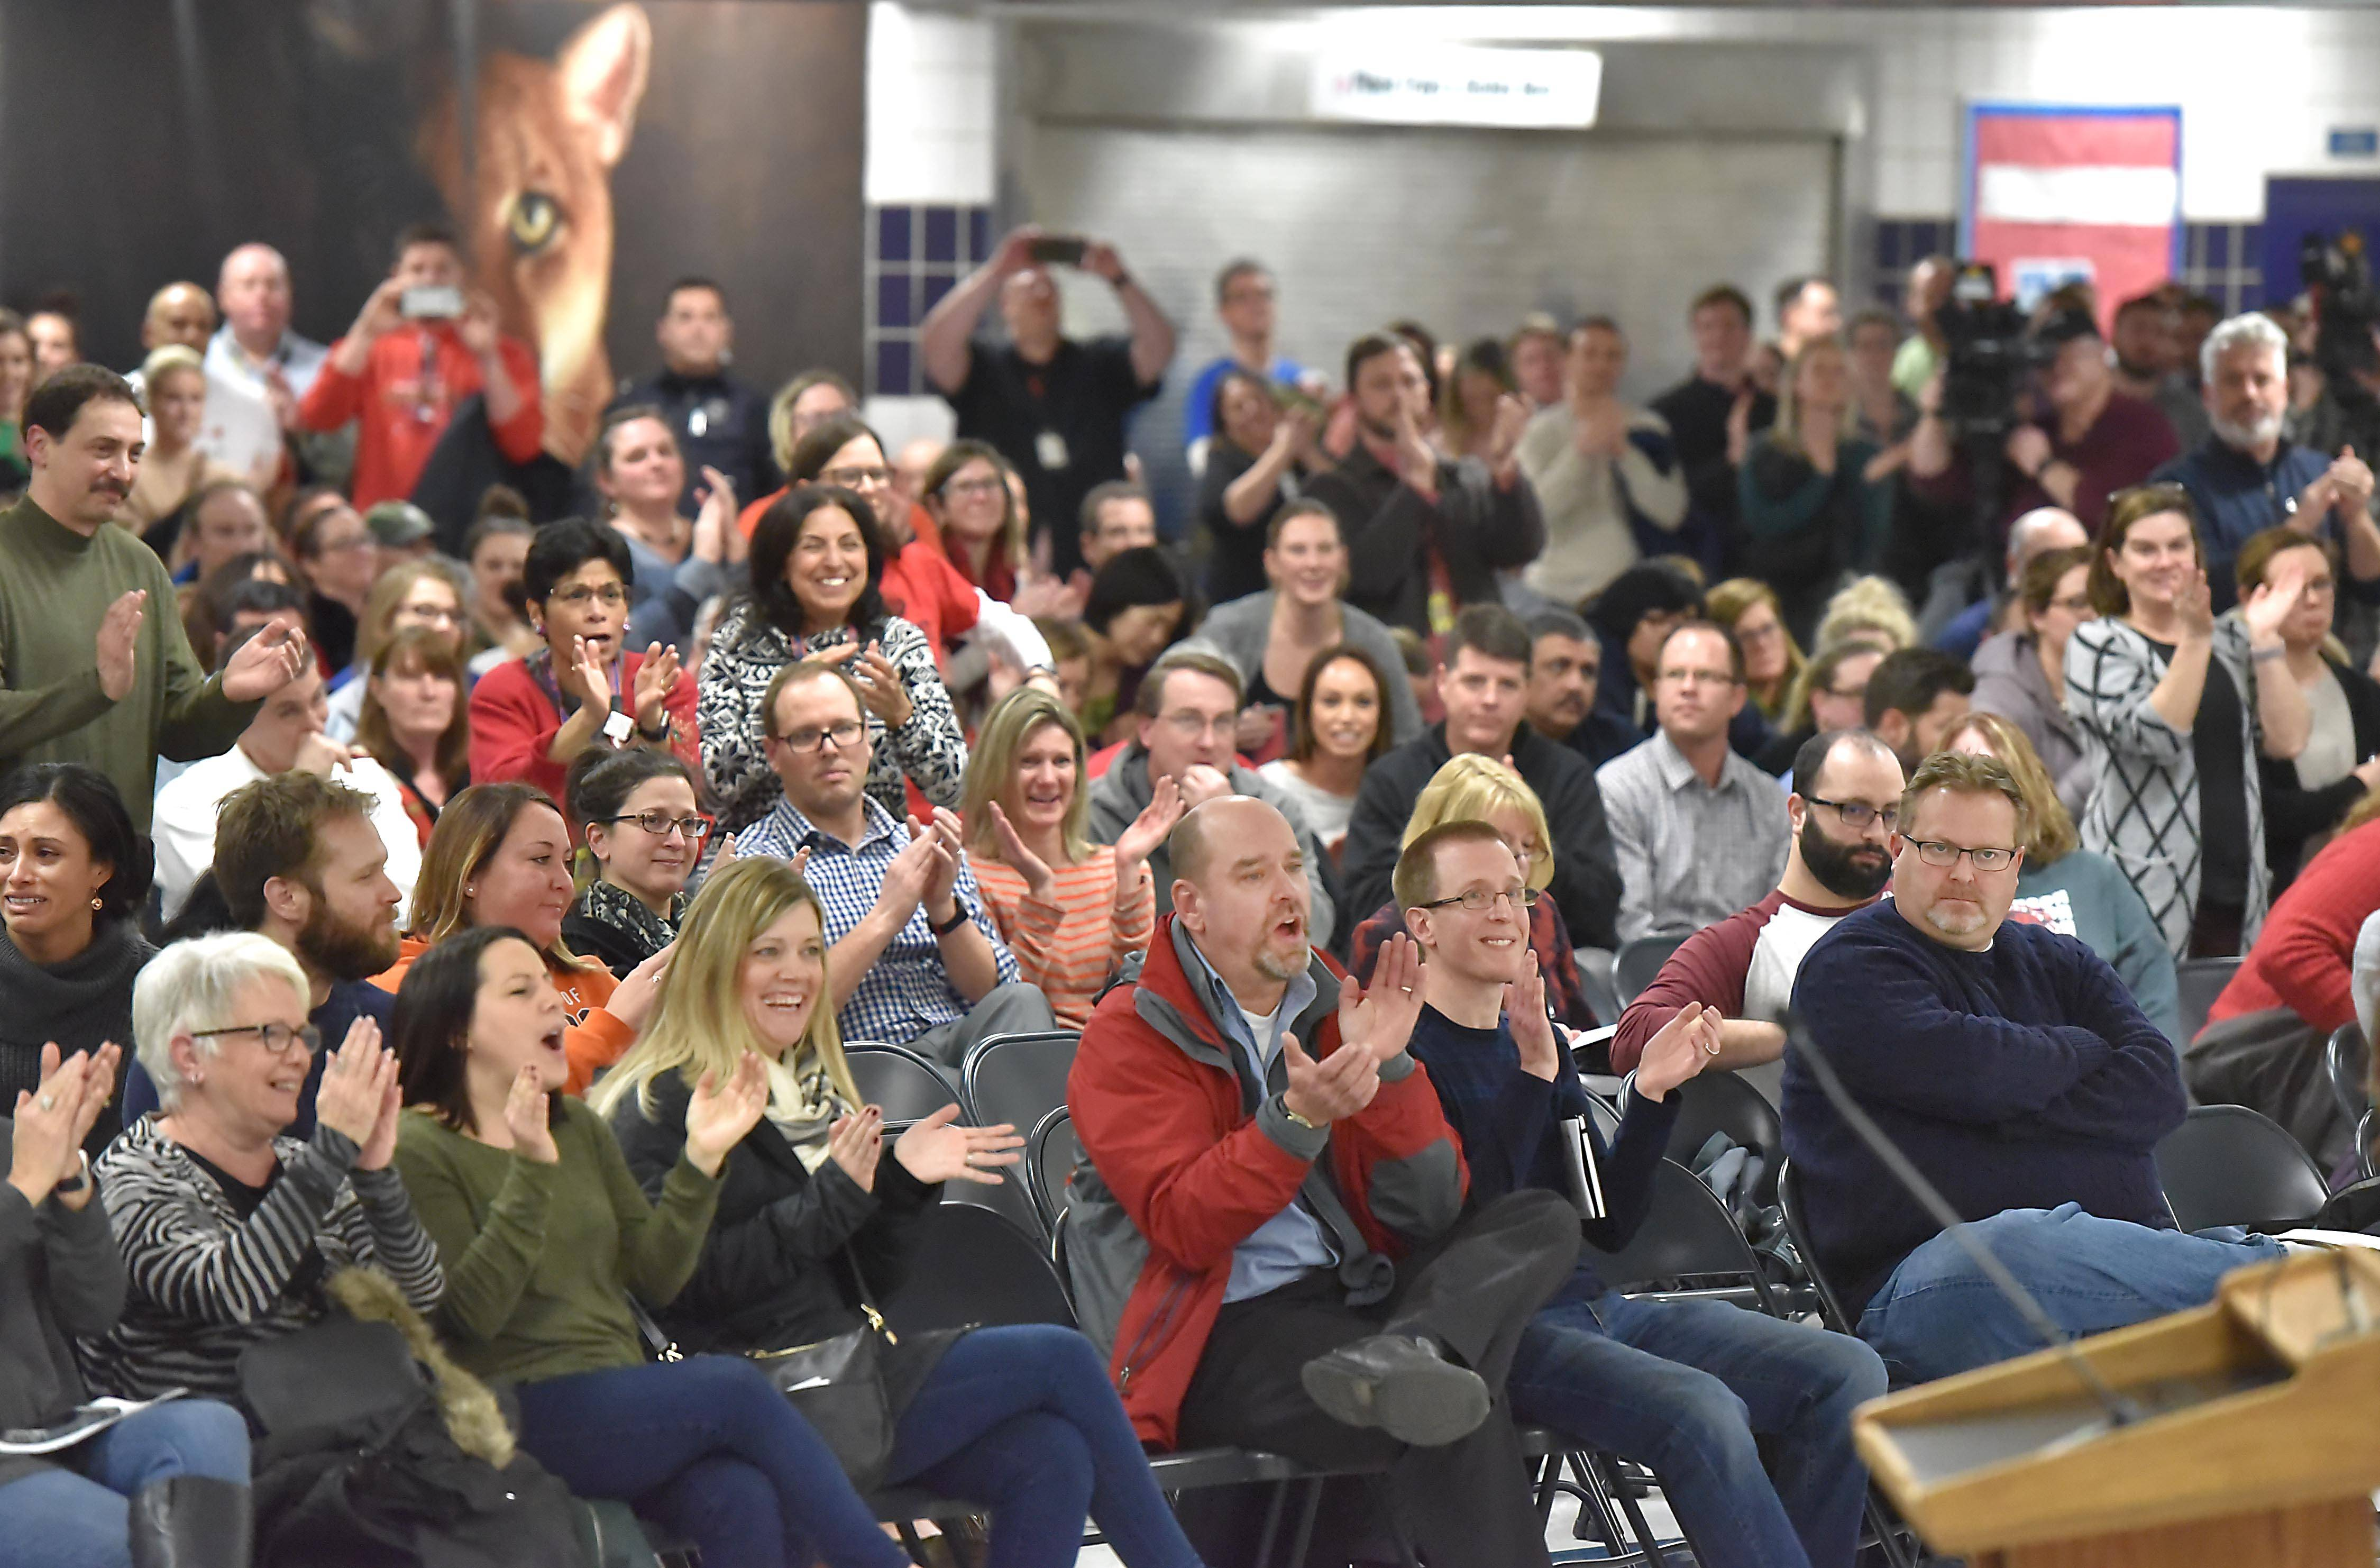 A crowd of teachers, parents and students filled the Conant High School cafeteria last Thursday when the Palatine-Schaumburg High School District 211 board of education listened to public comment on stalled contract negotiations and the potential of a teachers strike starting Tuesday.